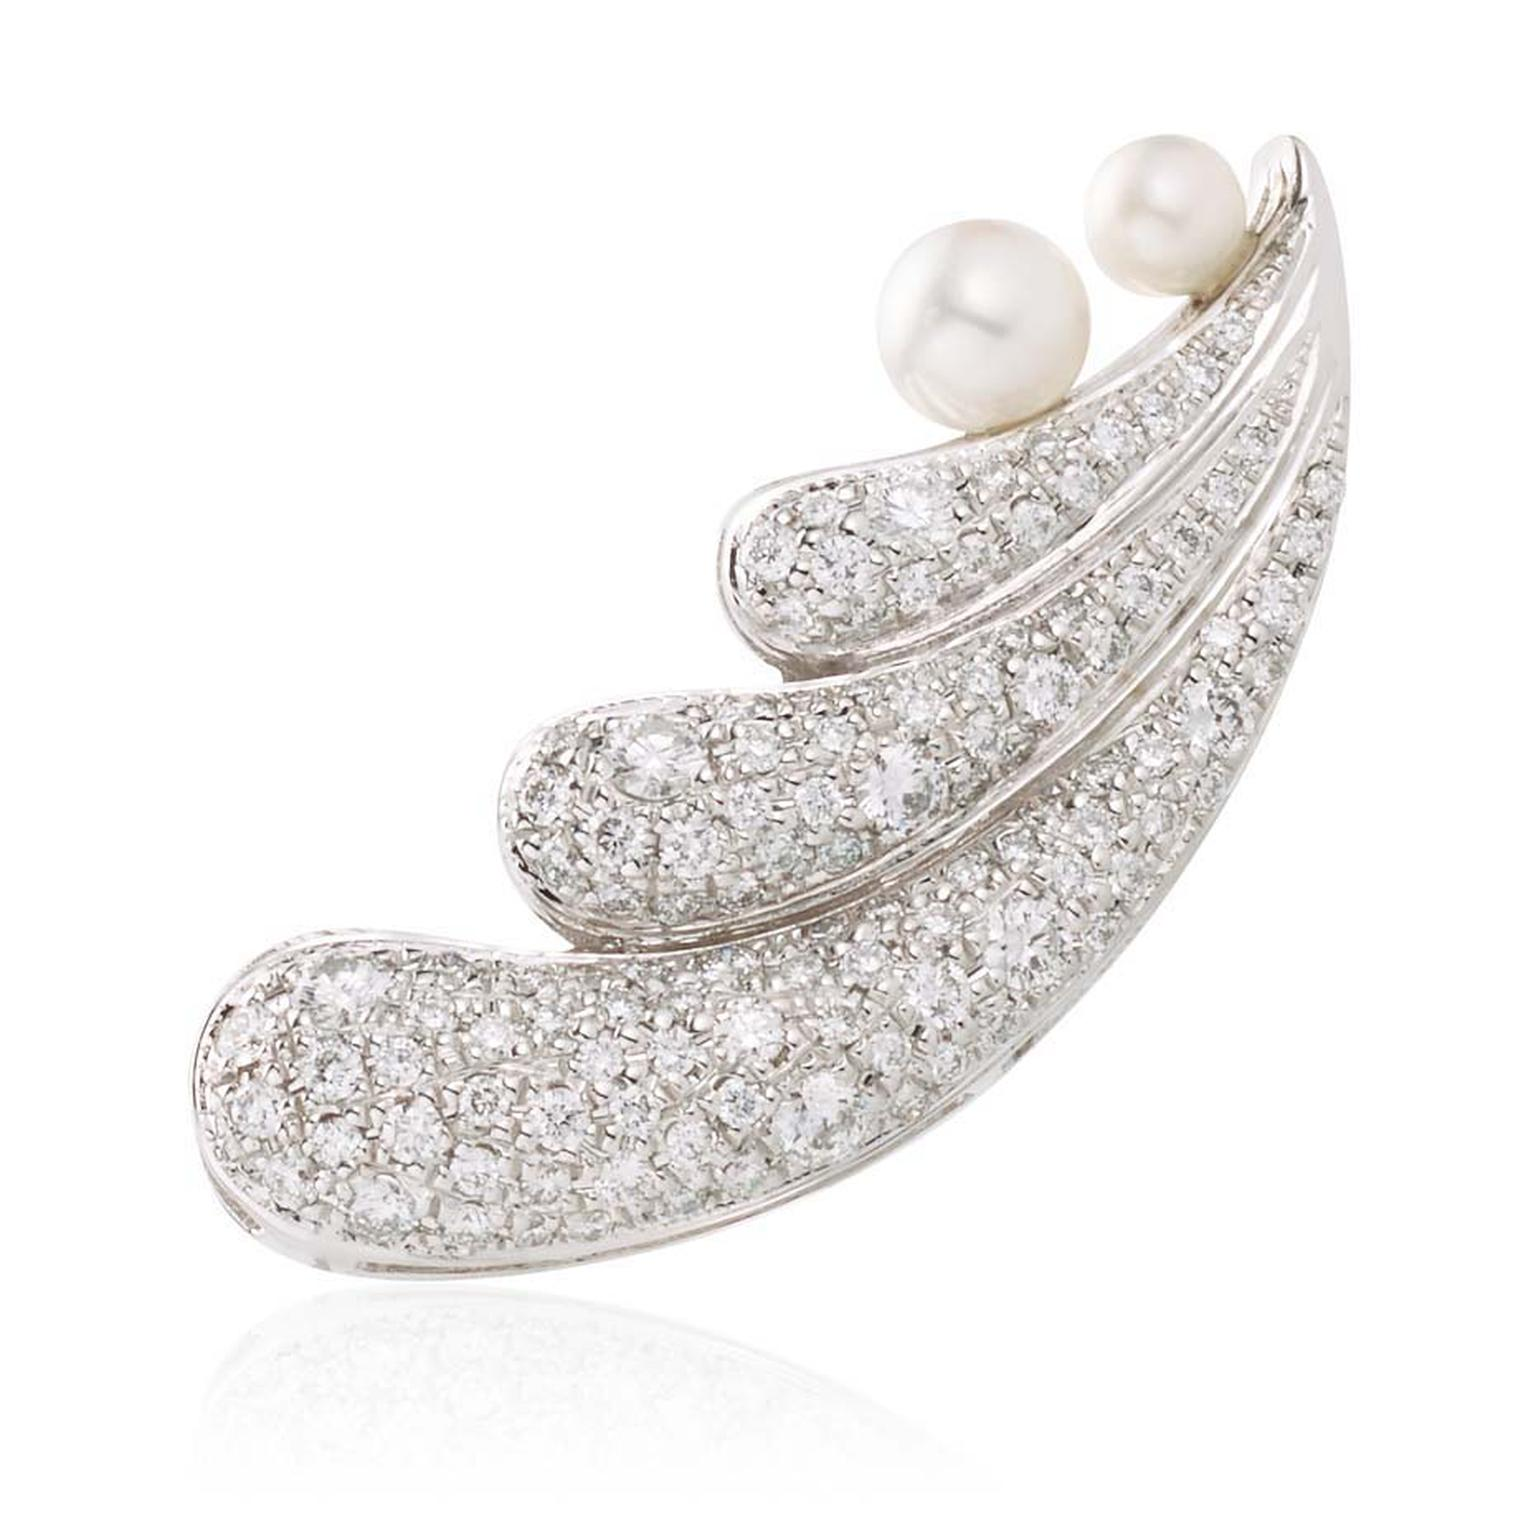 Nicholas Lieou Cosmos earrings with diamonds and pearls.